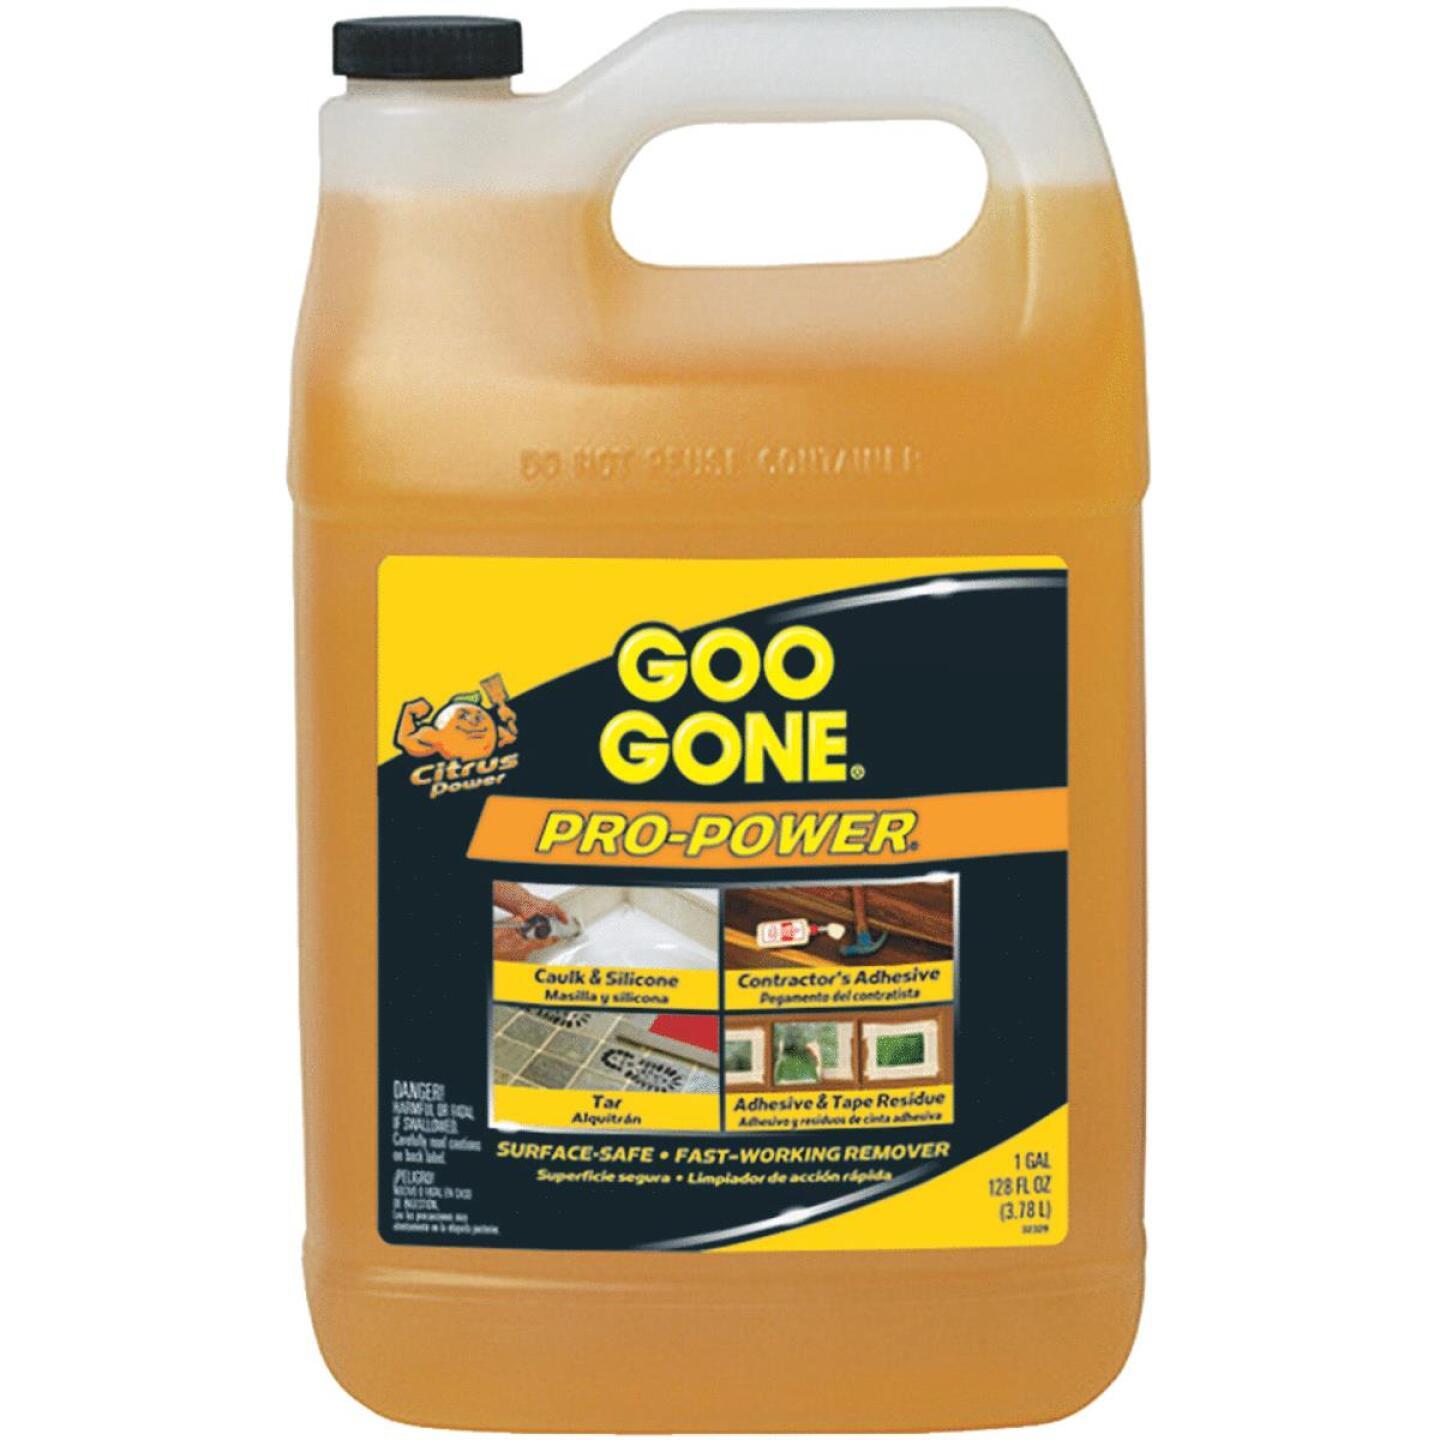 Goo Gone 1 Gal. Pro-Power Adhesive Remover Image 307